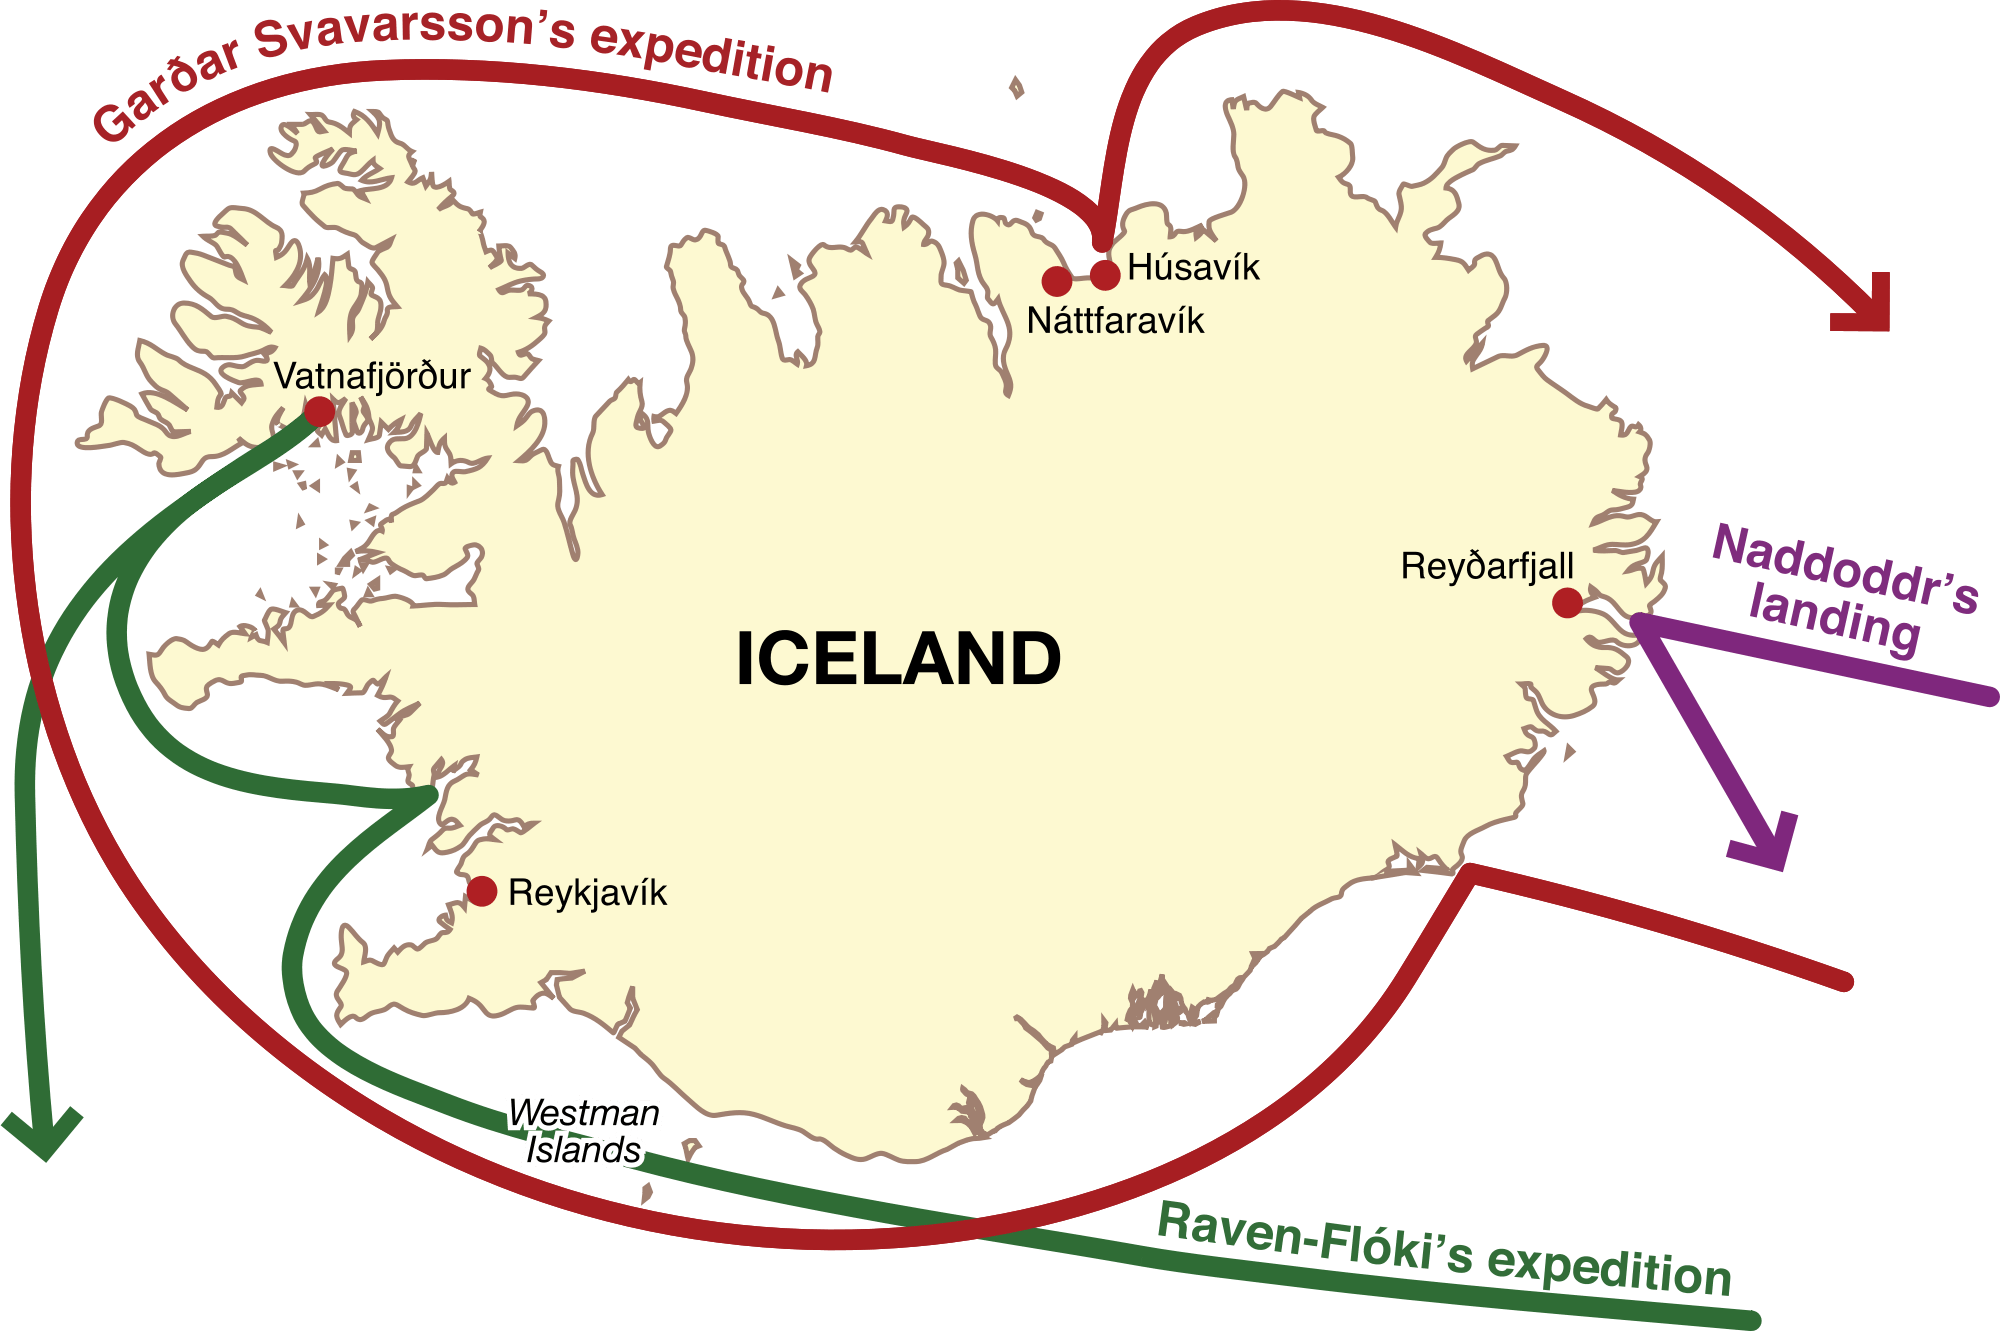 The norse discovery and settlement of iceland during the viking age map highlighting the norse expeditions to iceland during the 9th century image source commonsmedia gumiabroncs Images